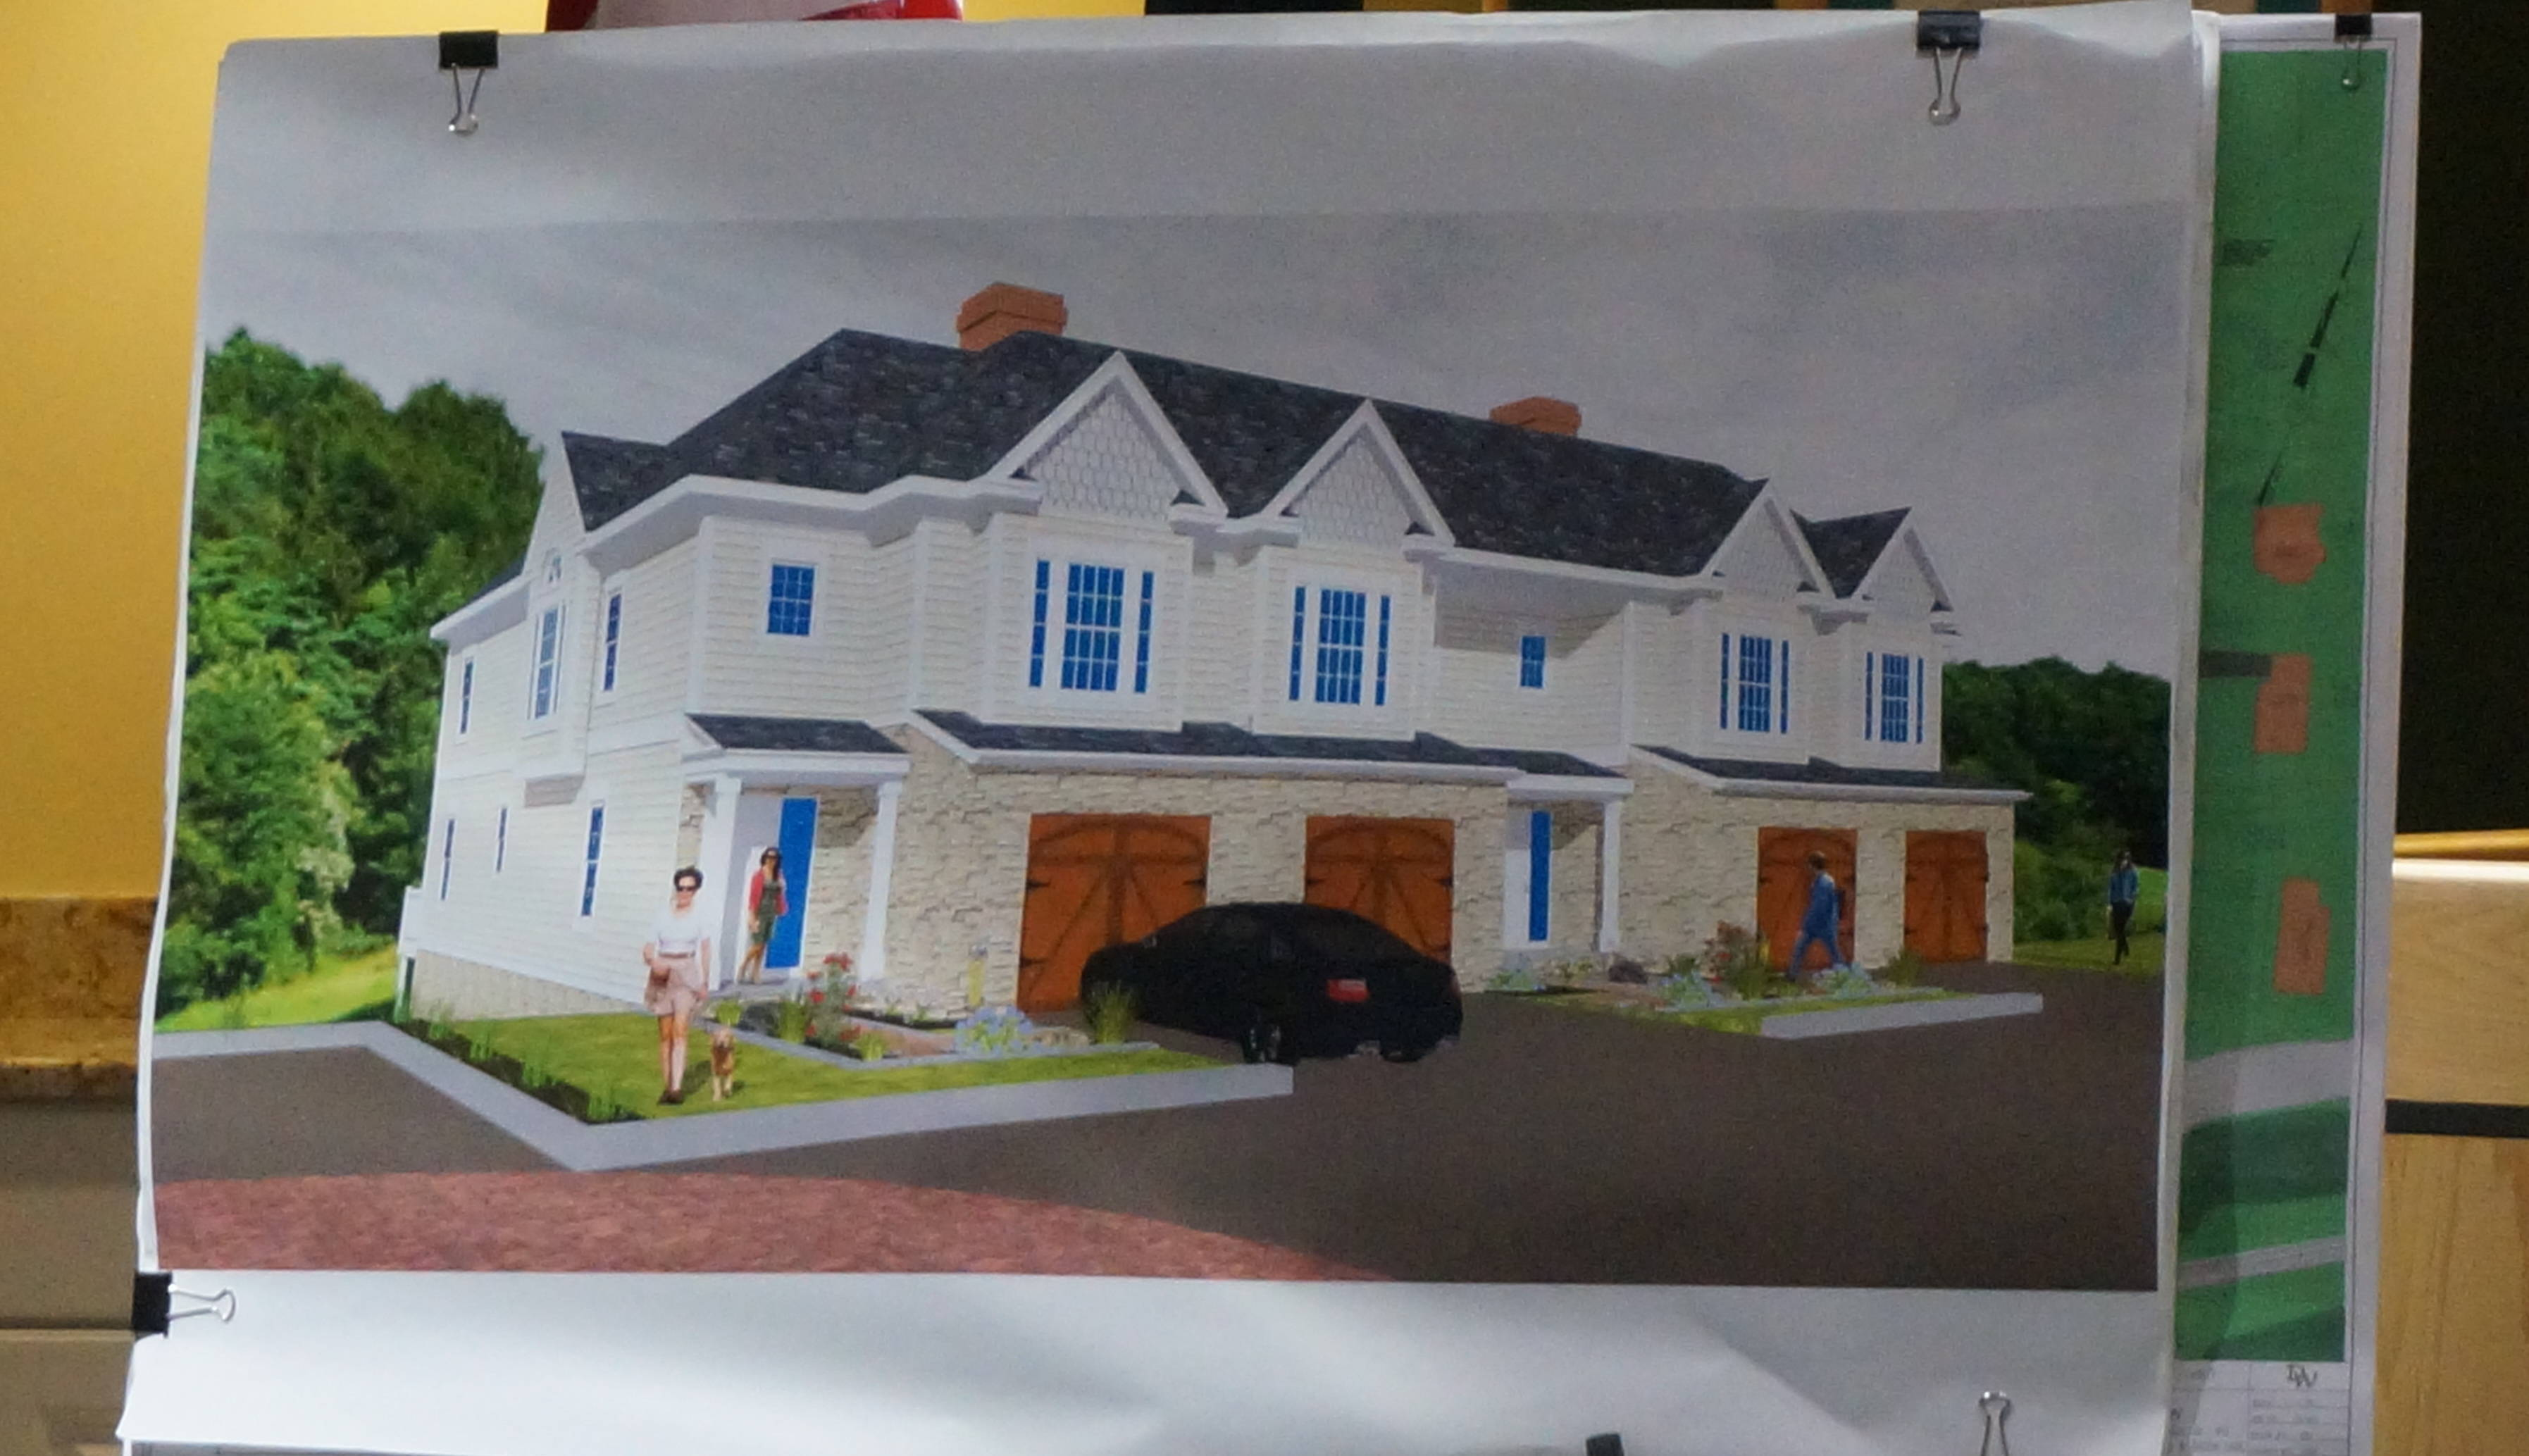 de648575aae9b57ee58e_a_Sample_townhouses_which_could_be_built_in_Towaco.JPG